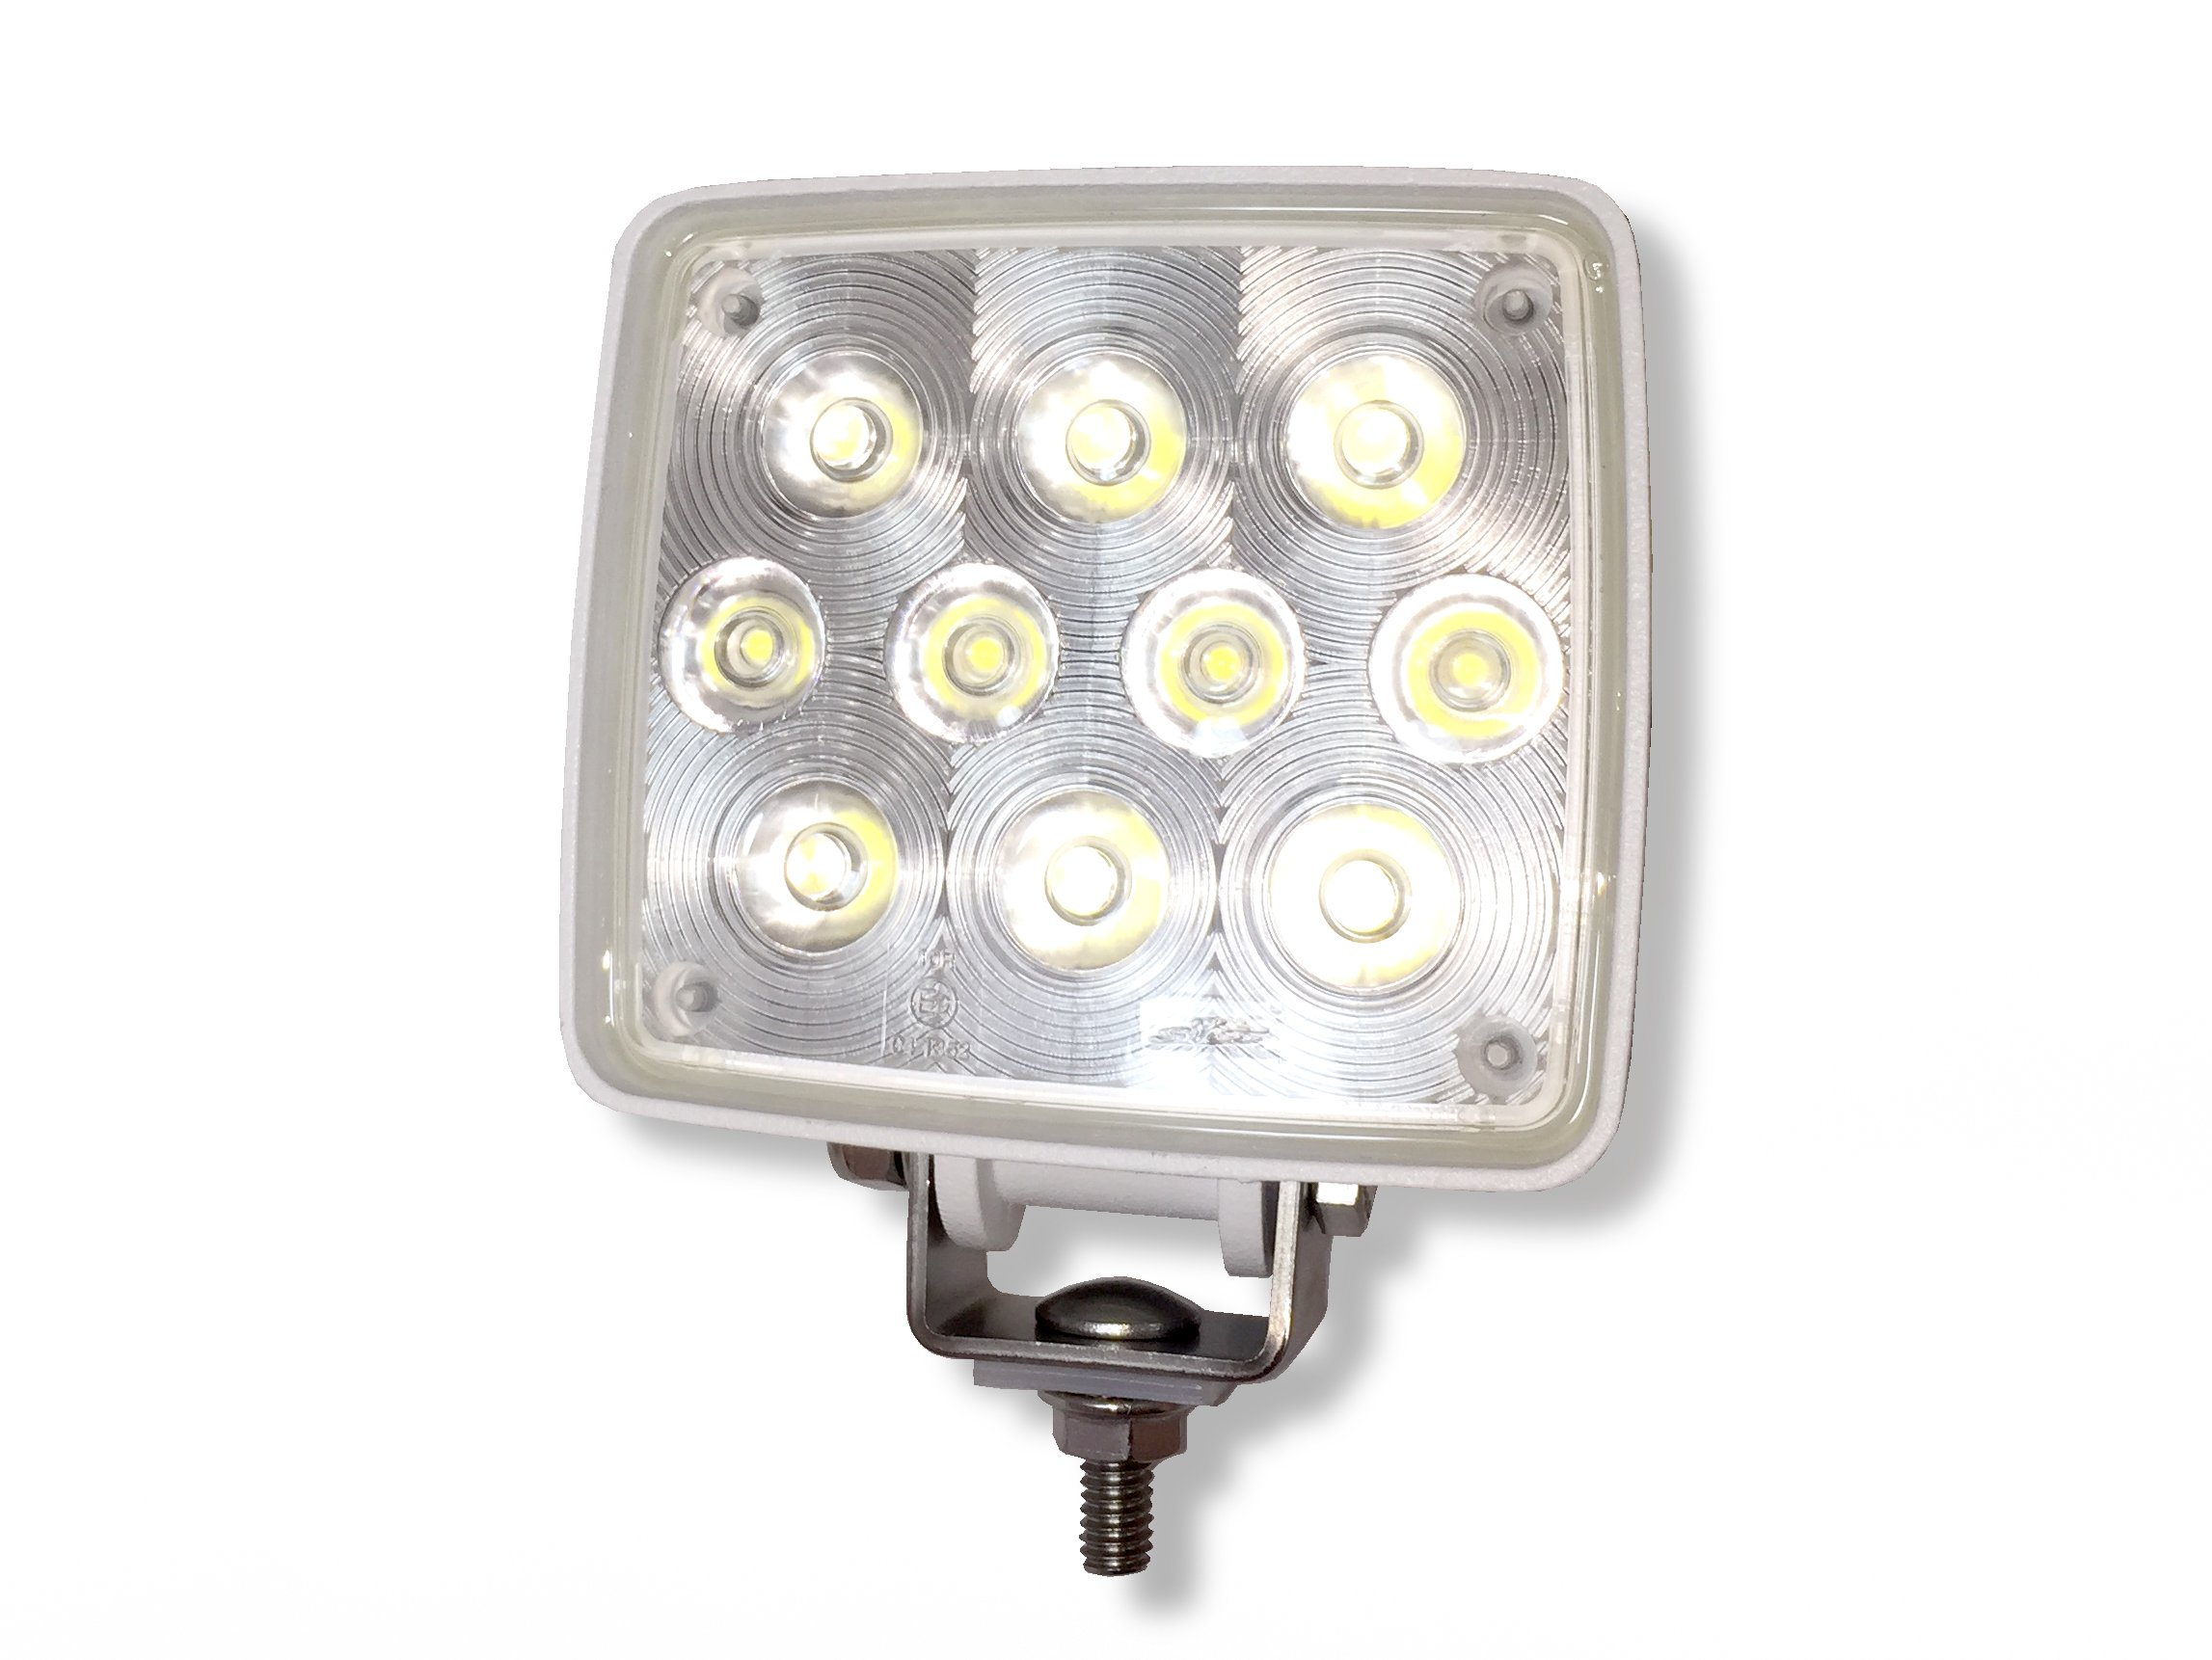 Five Oceans High Power LED Spotlight Marine Waterproof IP65 Cool White - BC 3893